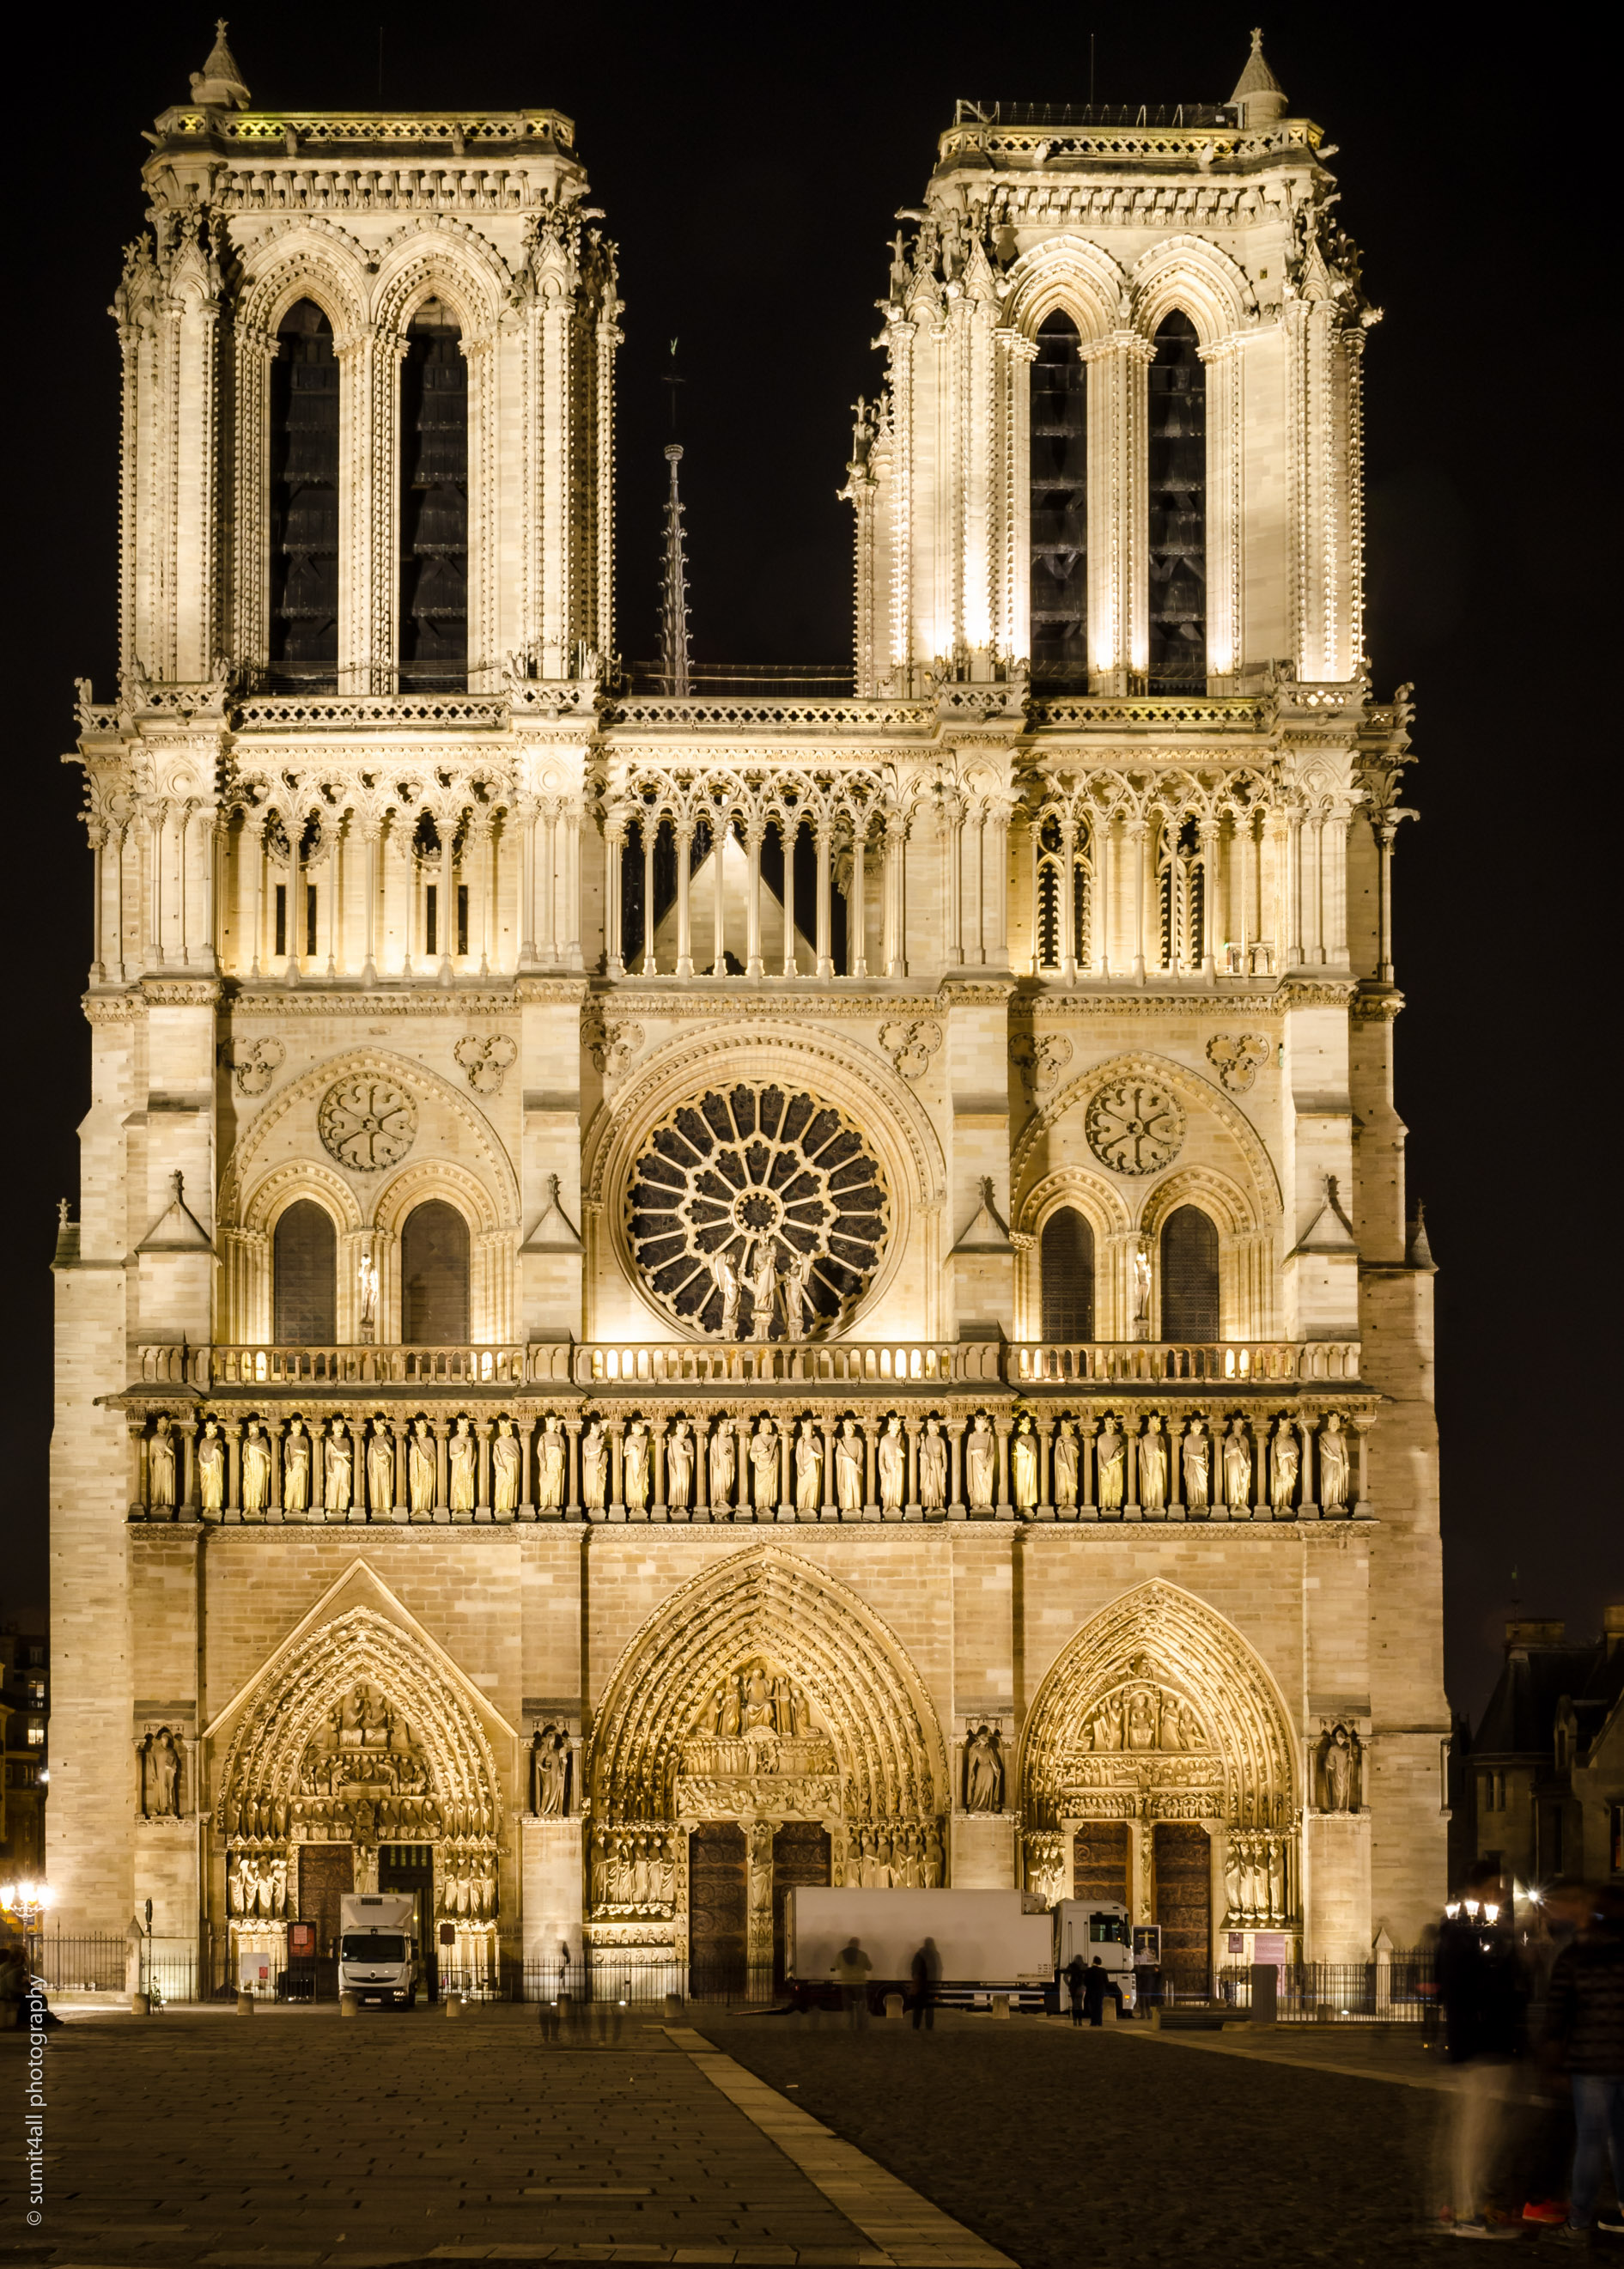 The Front Facade of the Notre Dame